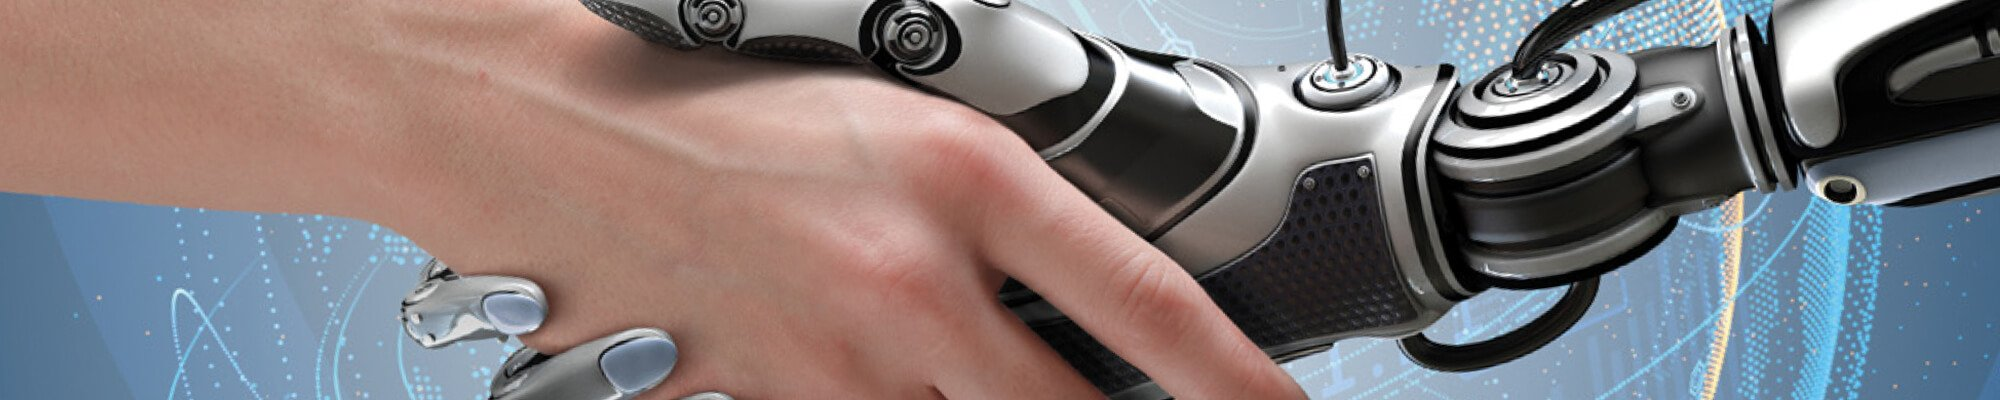 design for values in artificial intelligence: human hand shaking robot hand